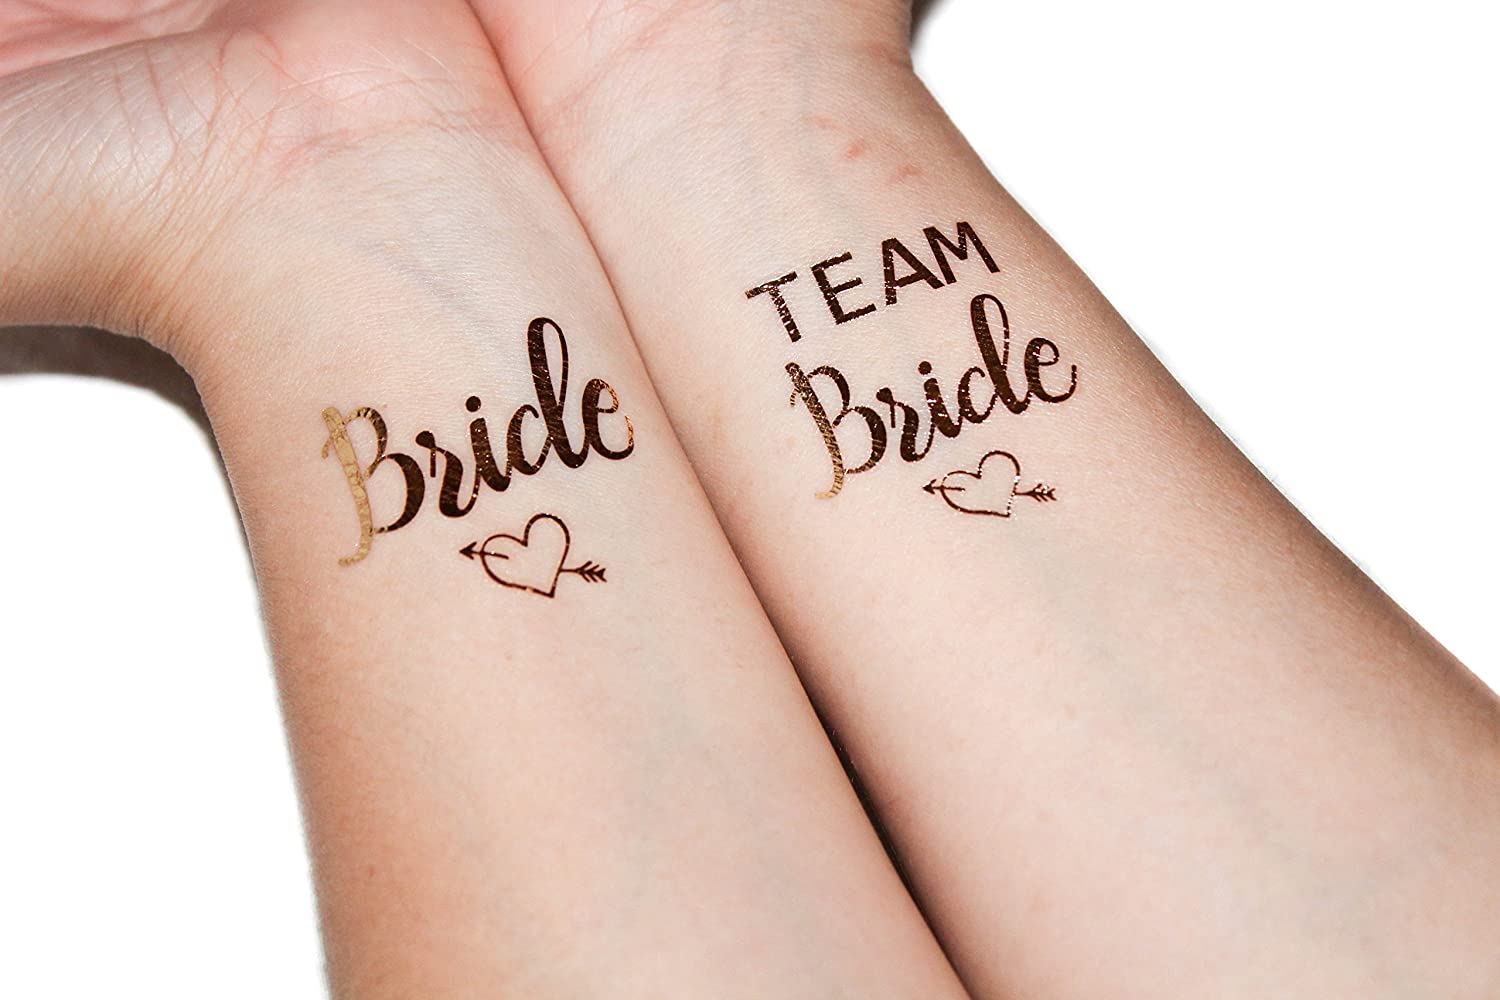 (12 pack) Bride and Team Bride Temporary Tattoos by Brides To Be -Metallic Shiny Gold Tattoos - Bachelorette Party Supplies and Accessories Favors